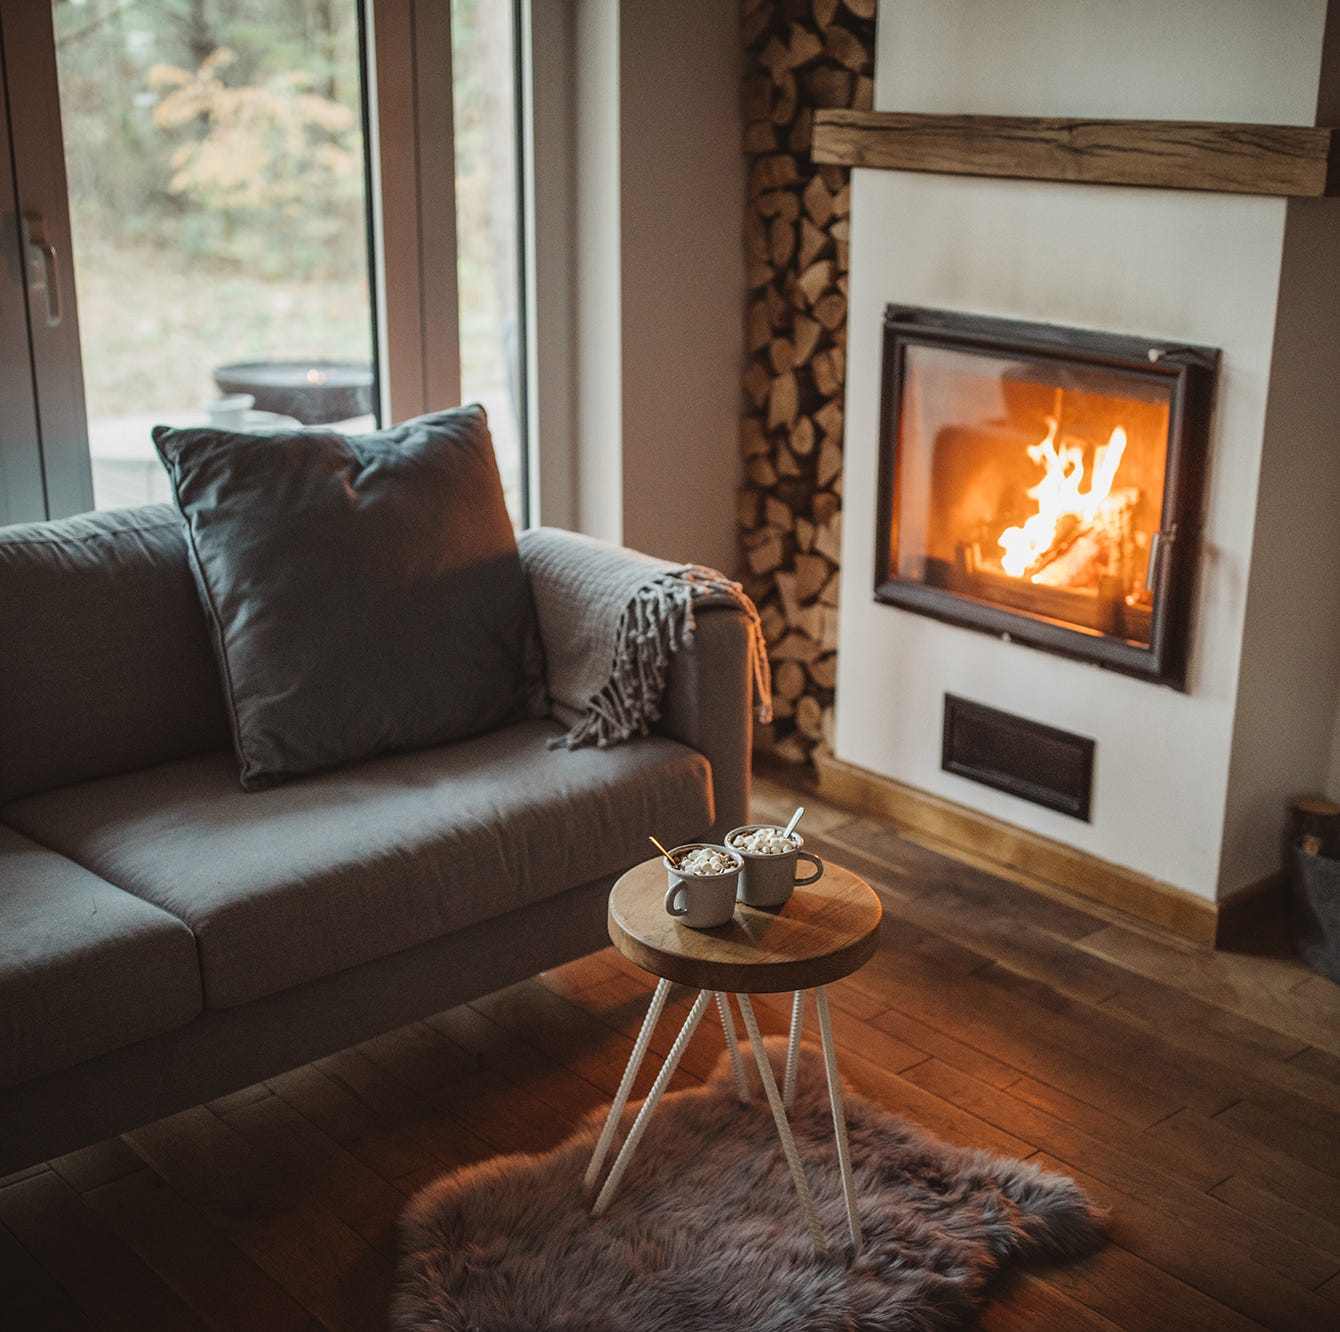 5 Simple Ways to Keep Your House Warm this Winter